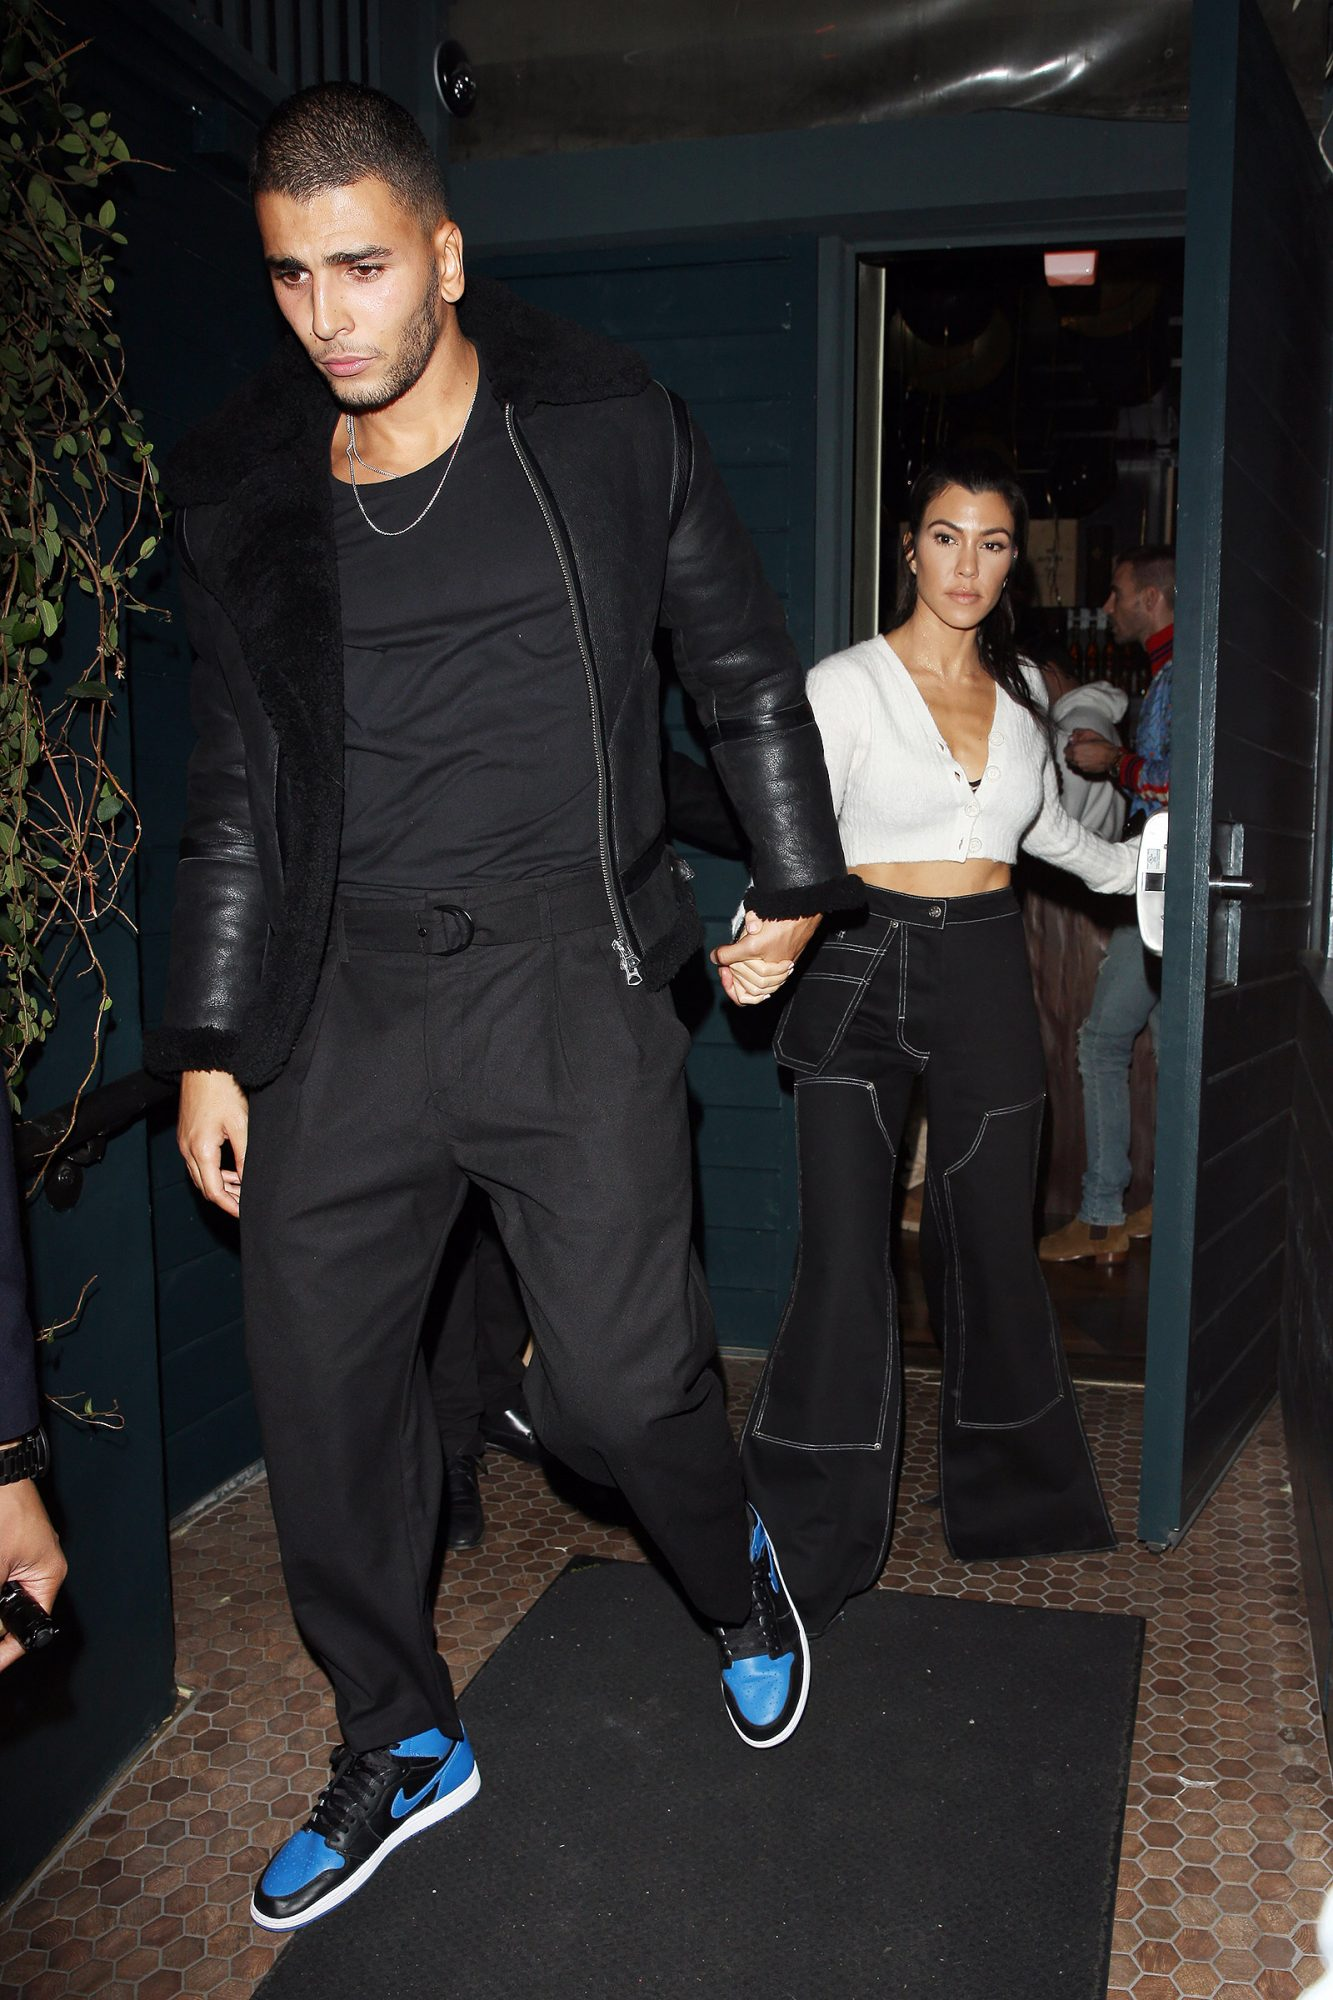 Kourtney Kardashian and Younes Bendjima walk hand in hand out of Le petit Restaurant after celebrating Kendall Jenner's 22nd Birthday Party